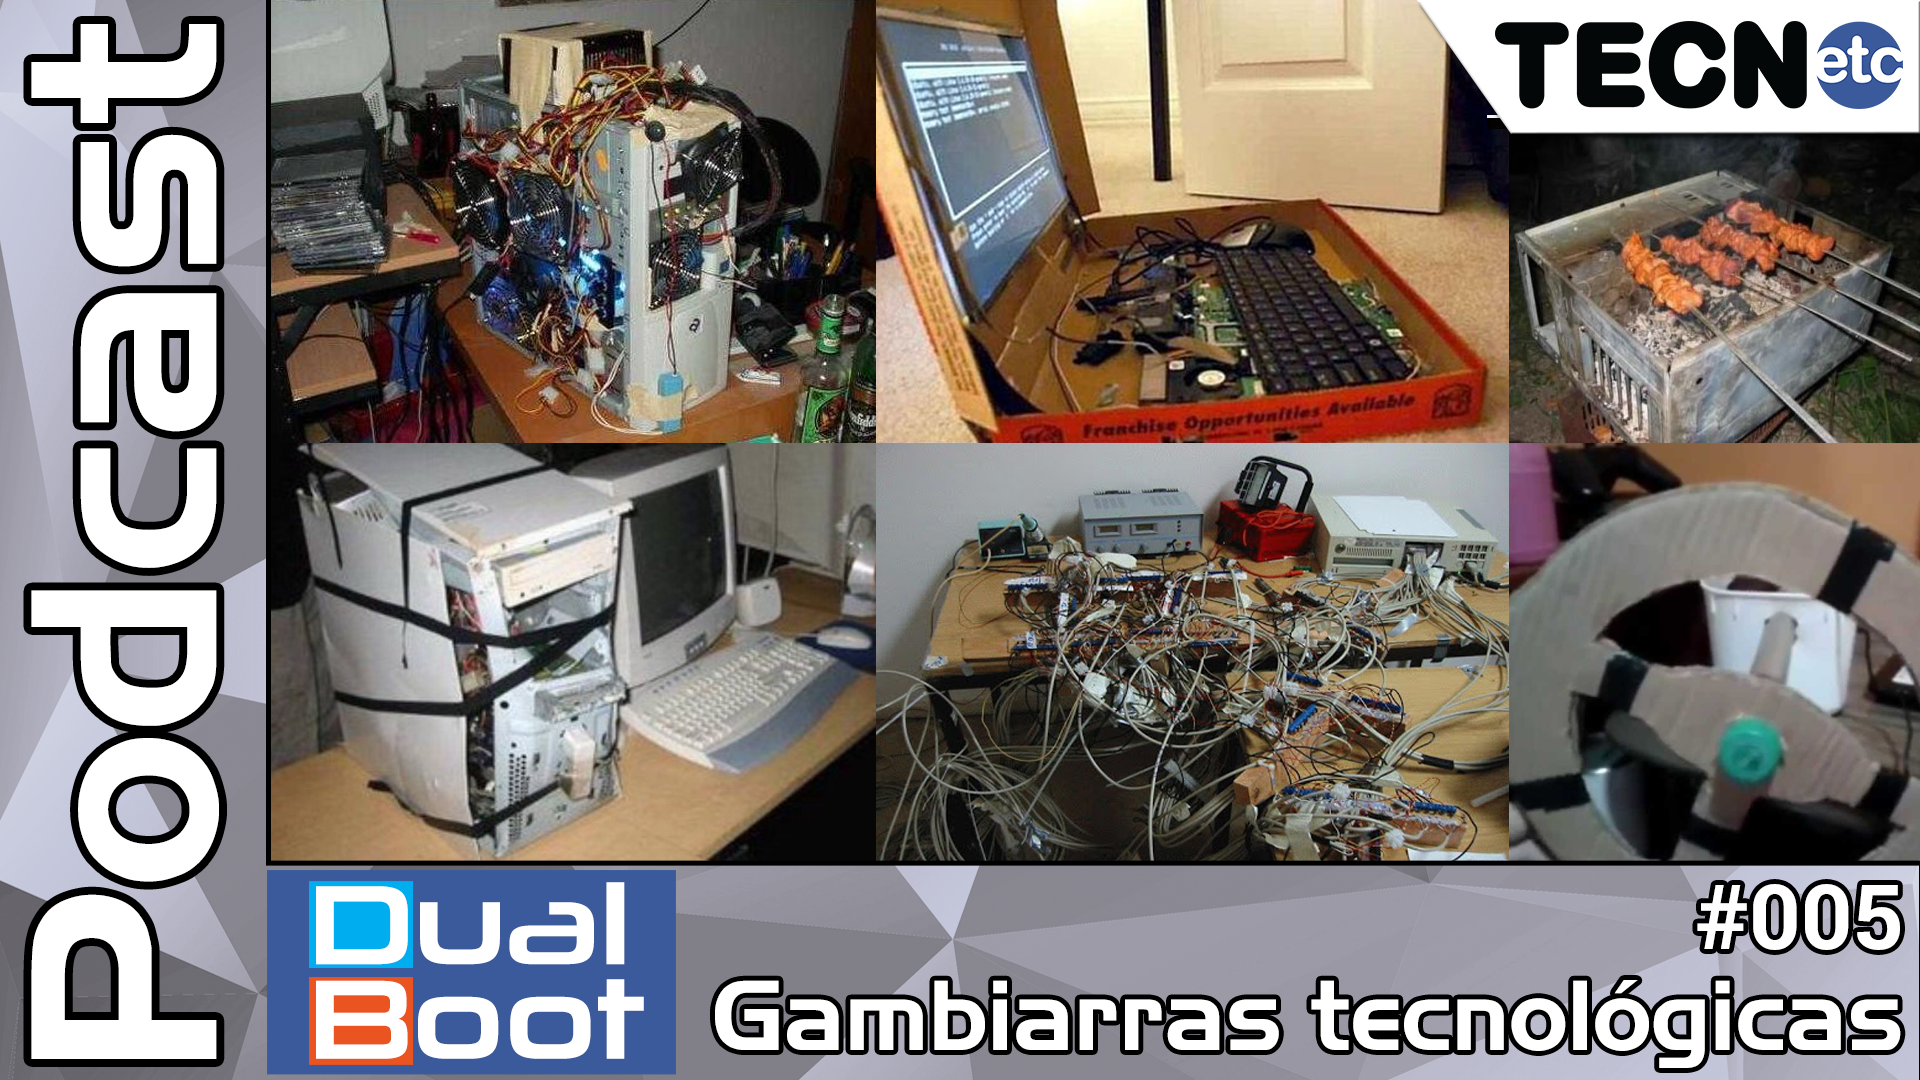 Dual Boot #005: Gambiarras tecnológicas – Podcast